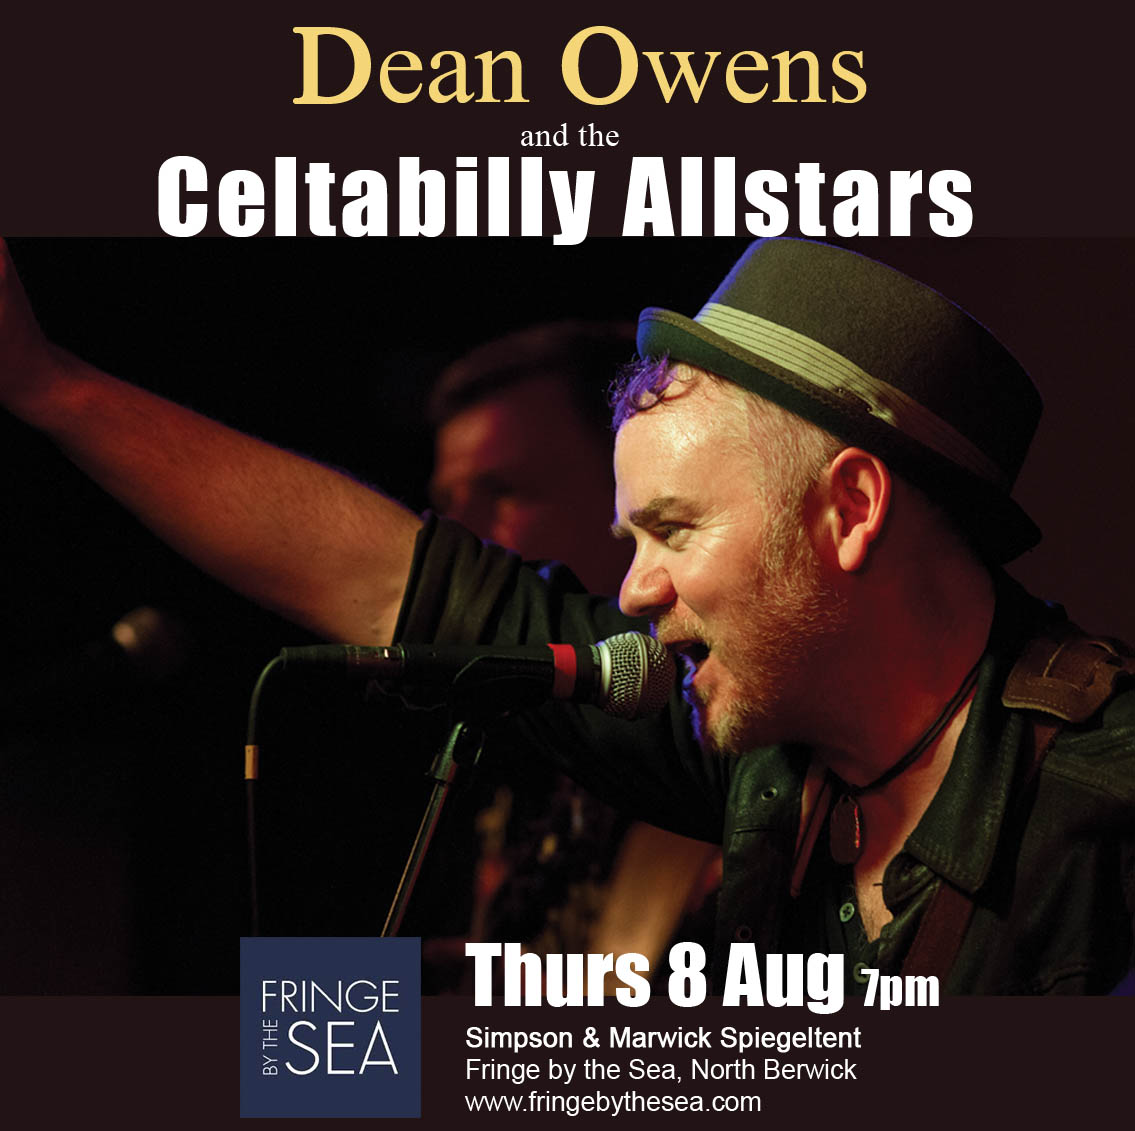 Flyer for Dean Owens and the Celtabilly Allstars at Fringe by the Sea, North Berwick